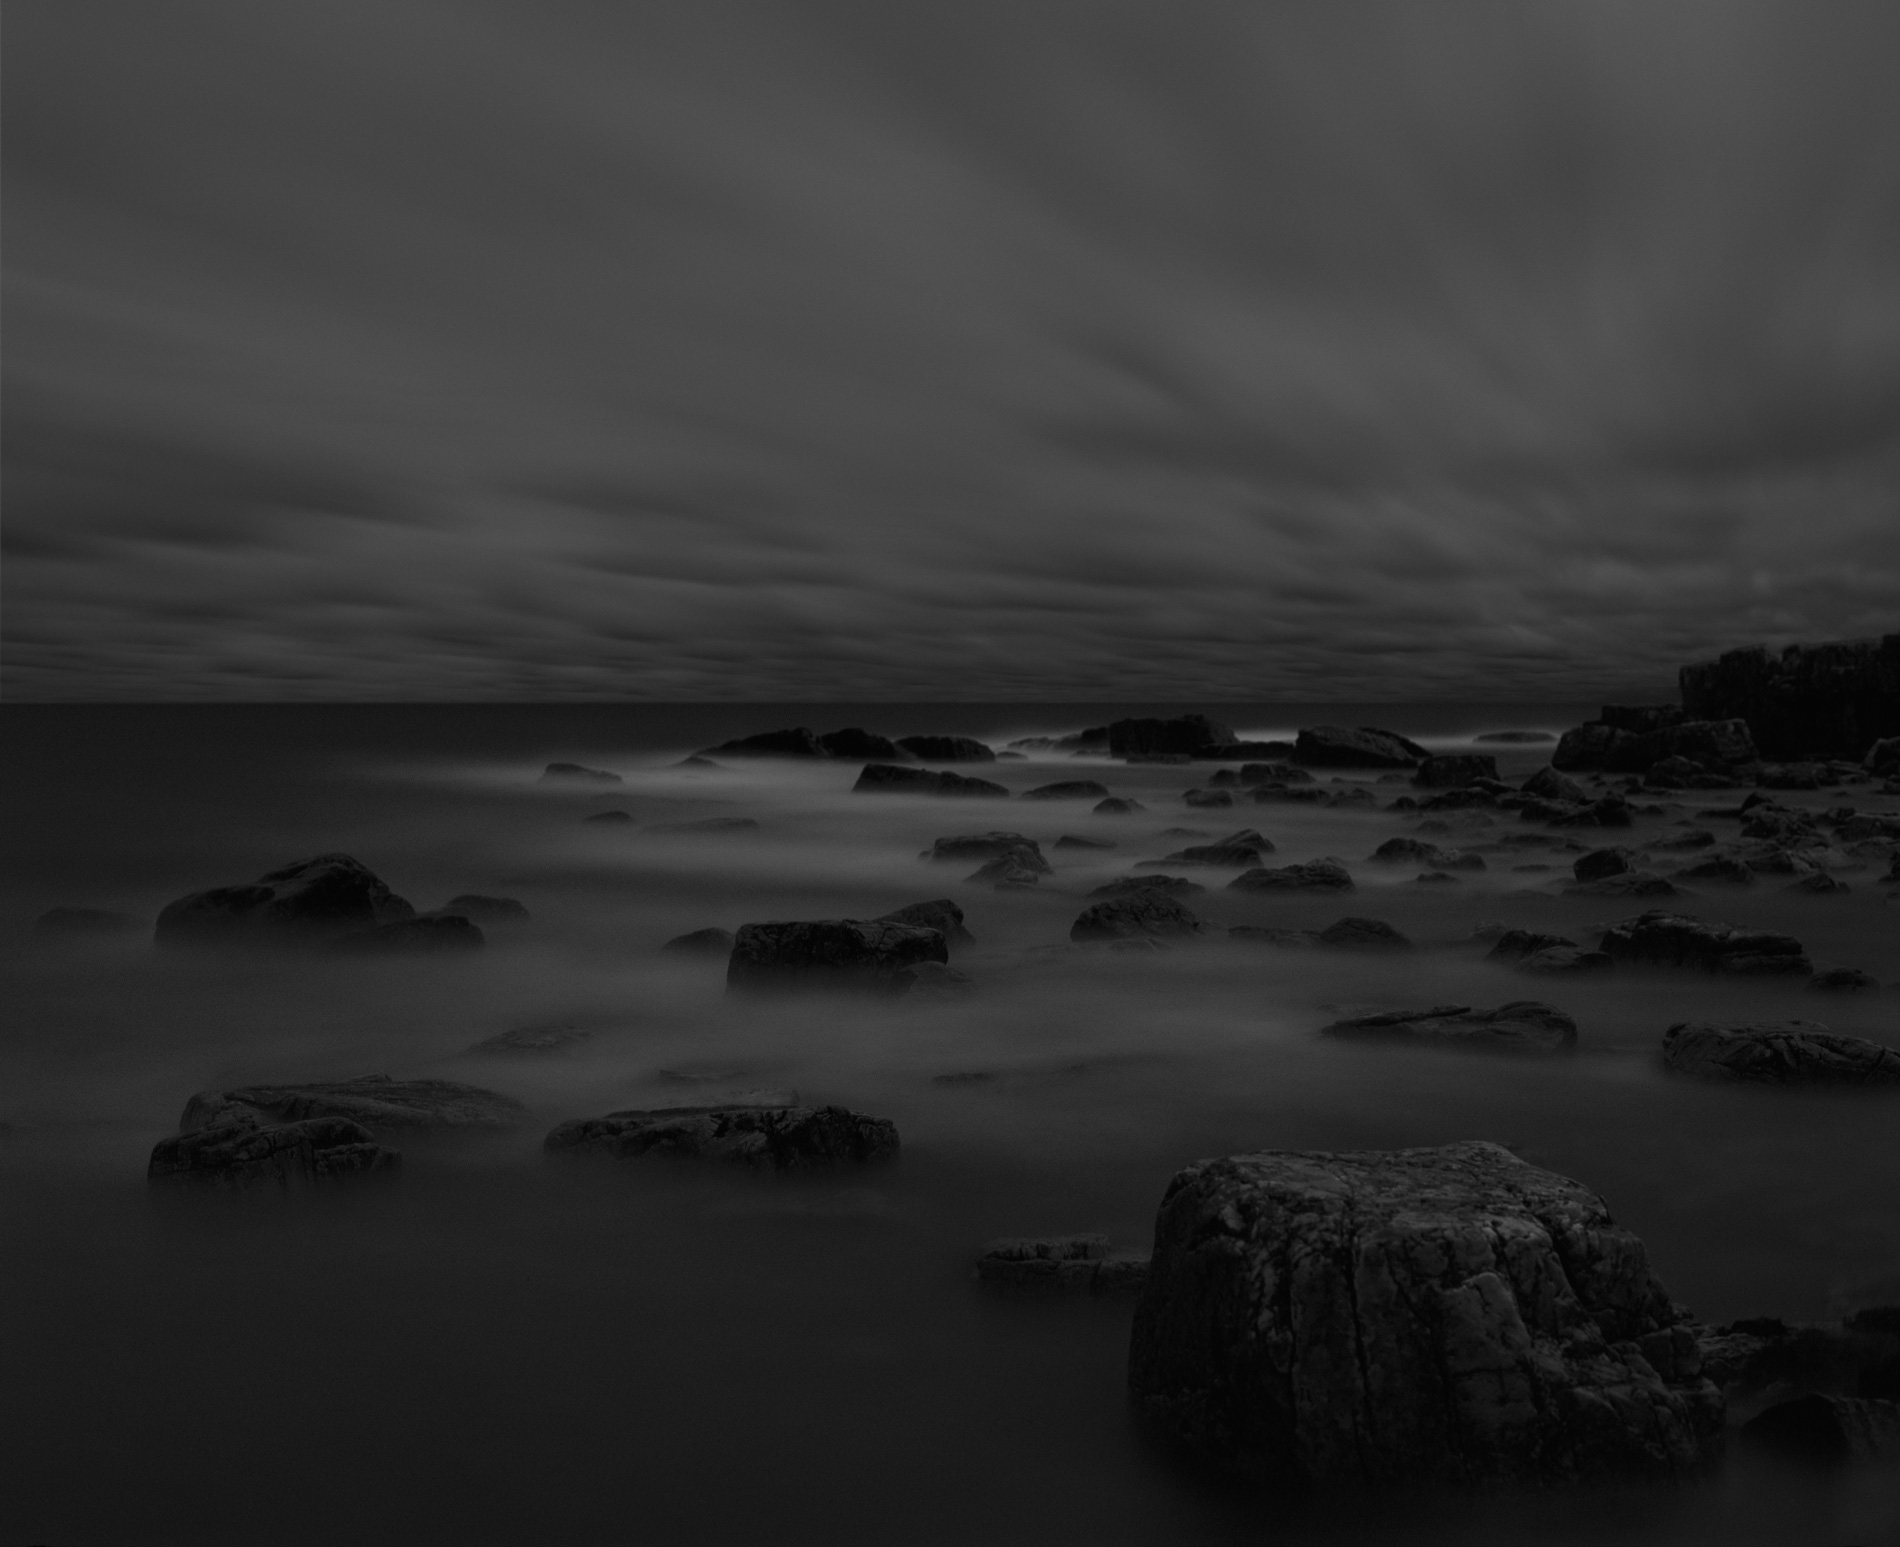 Black rocks in water dark sky water motion copyright Kenneth Rimm